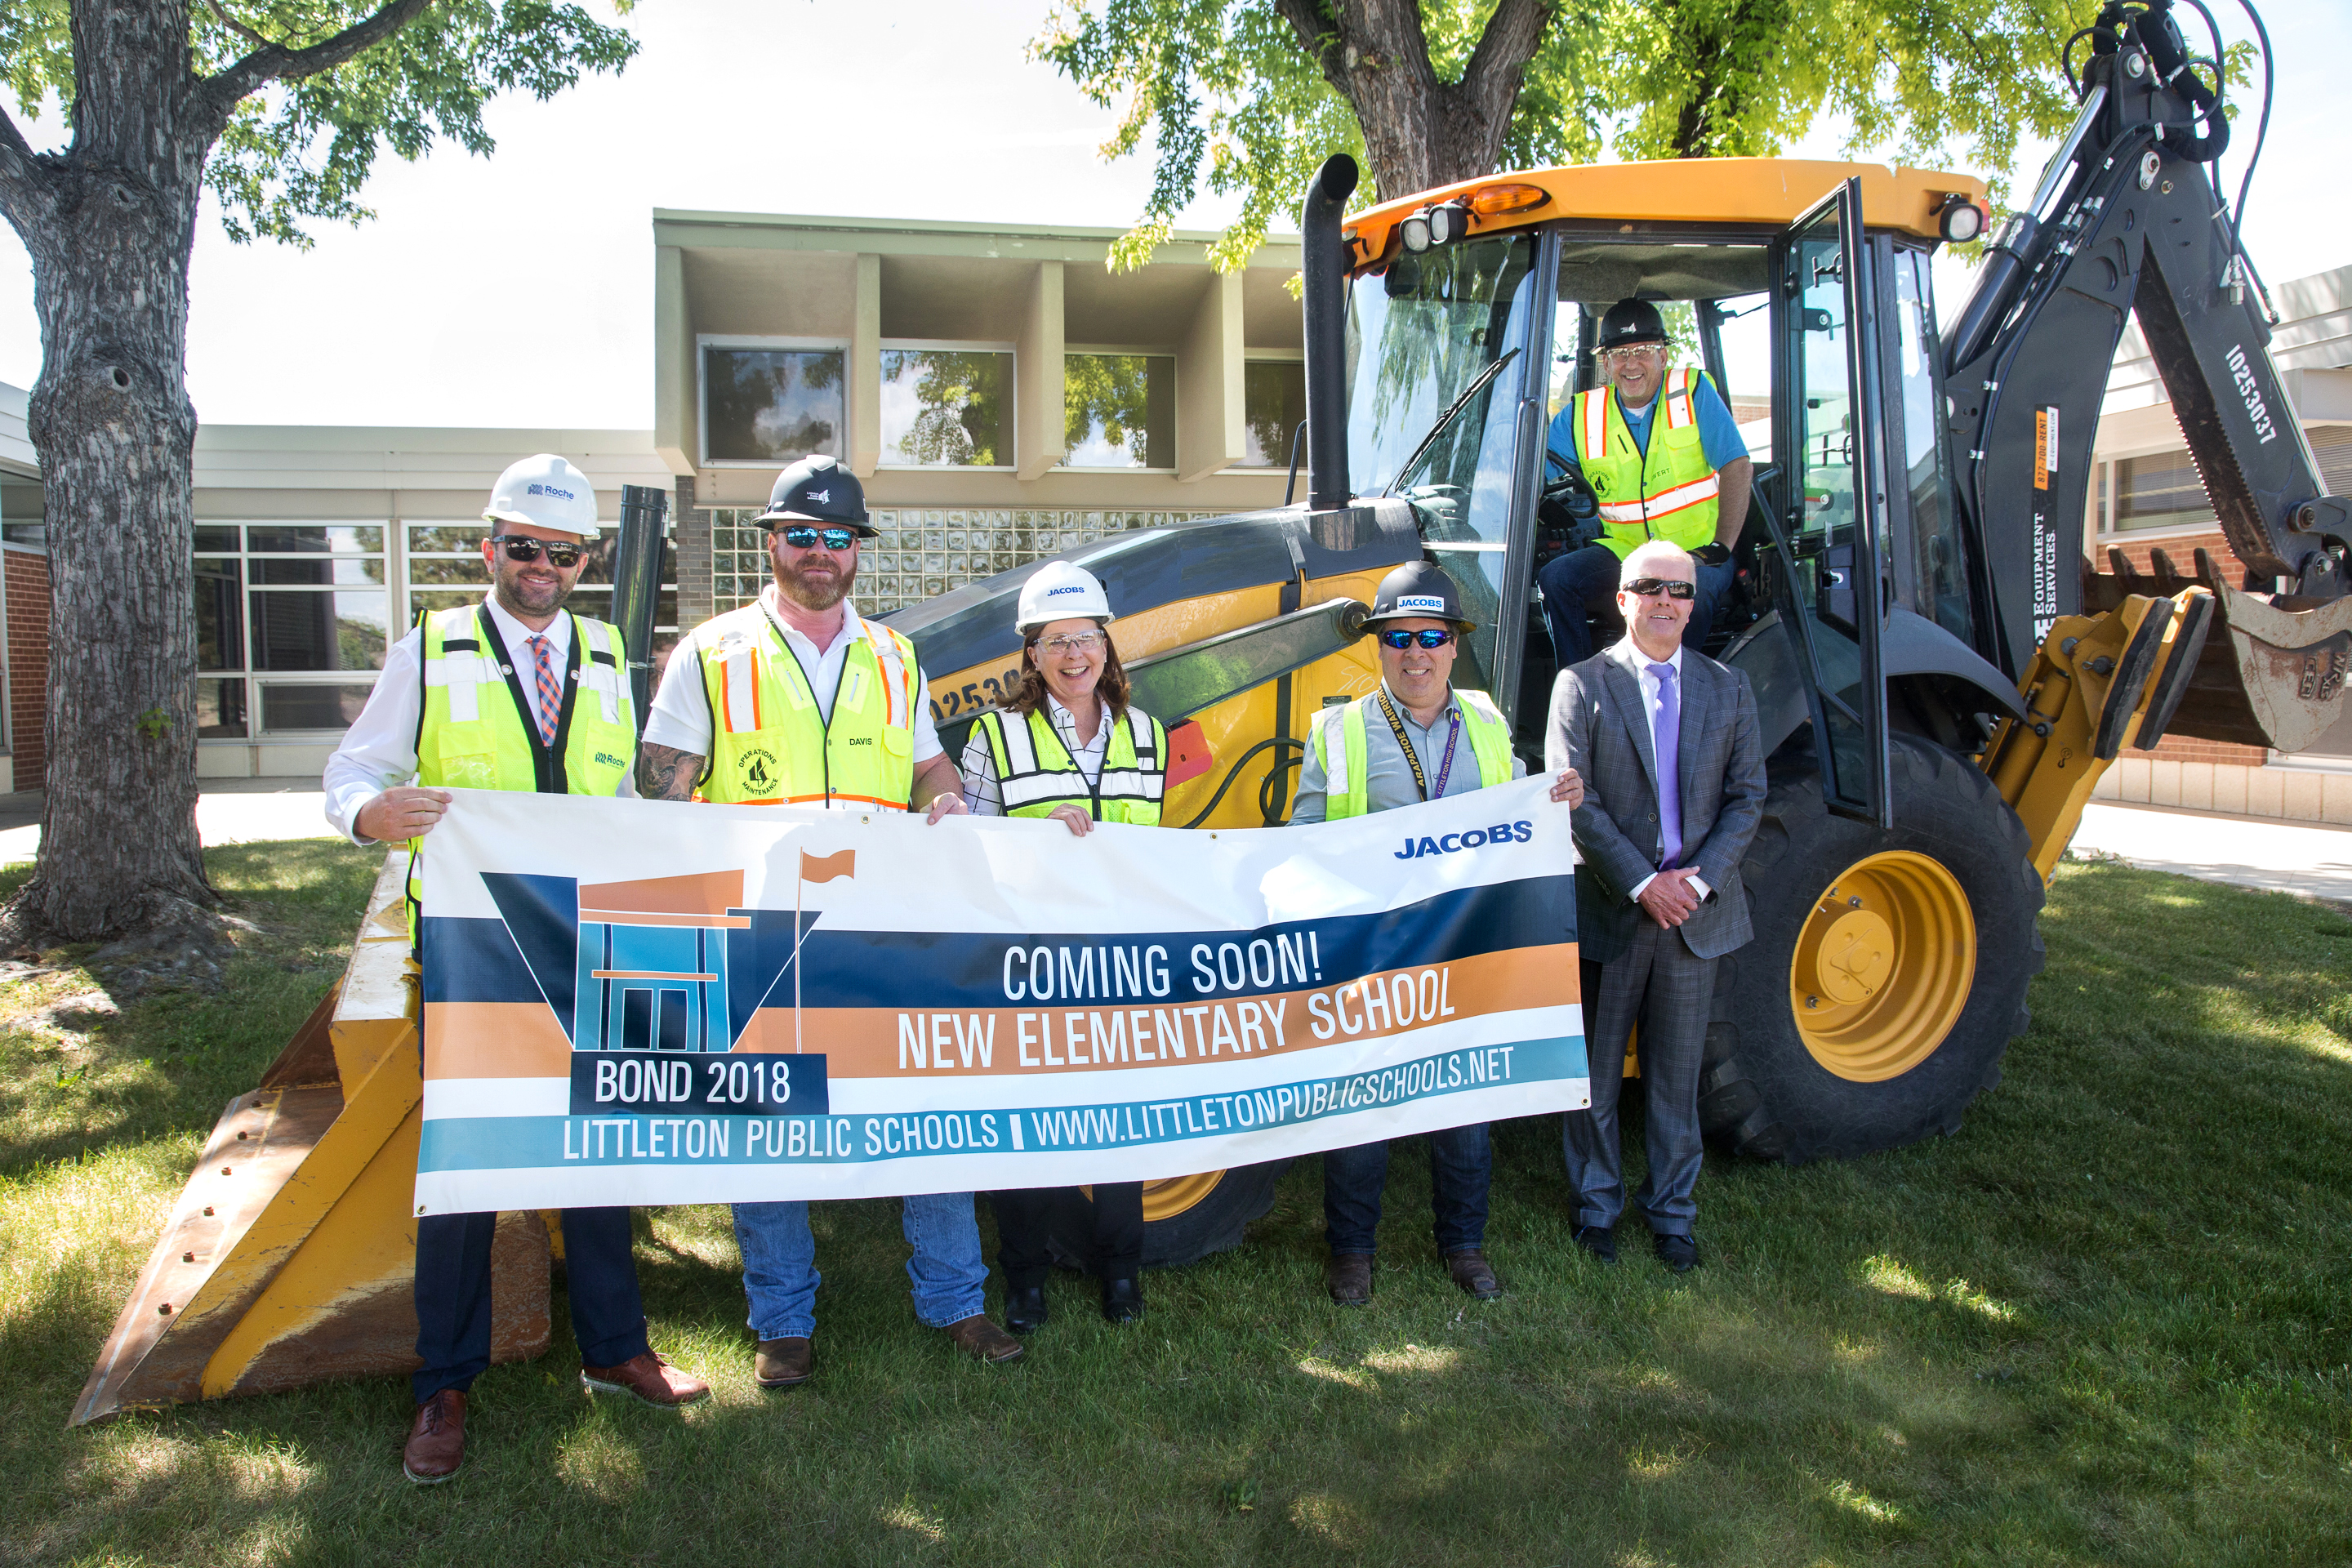 2018 Bond groundbreaking at Ames June 13, 2019